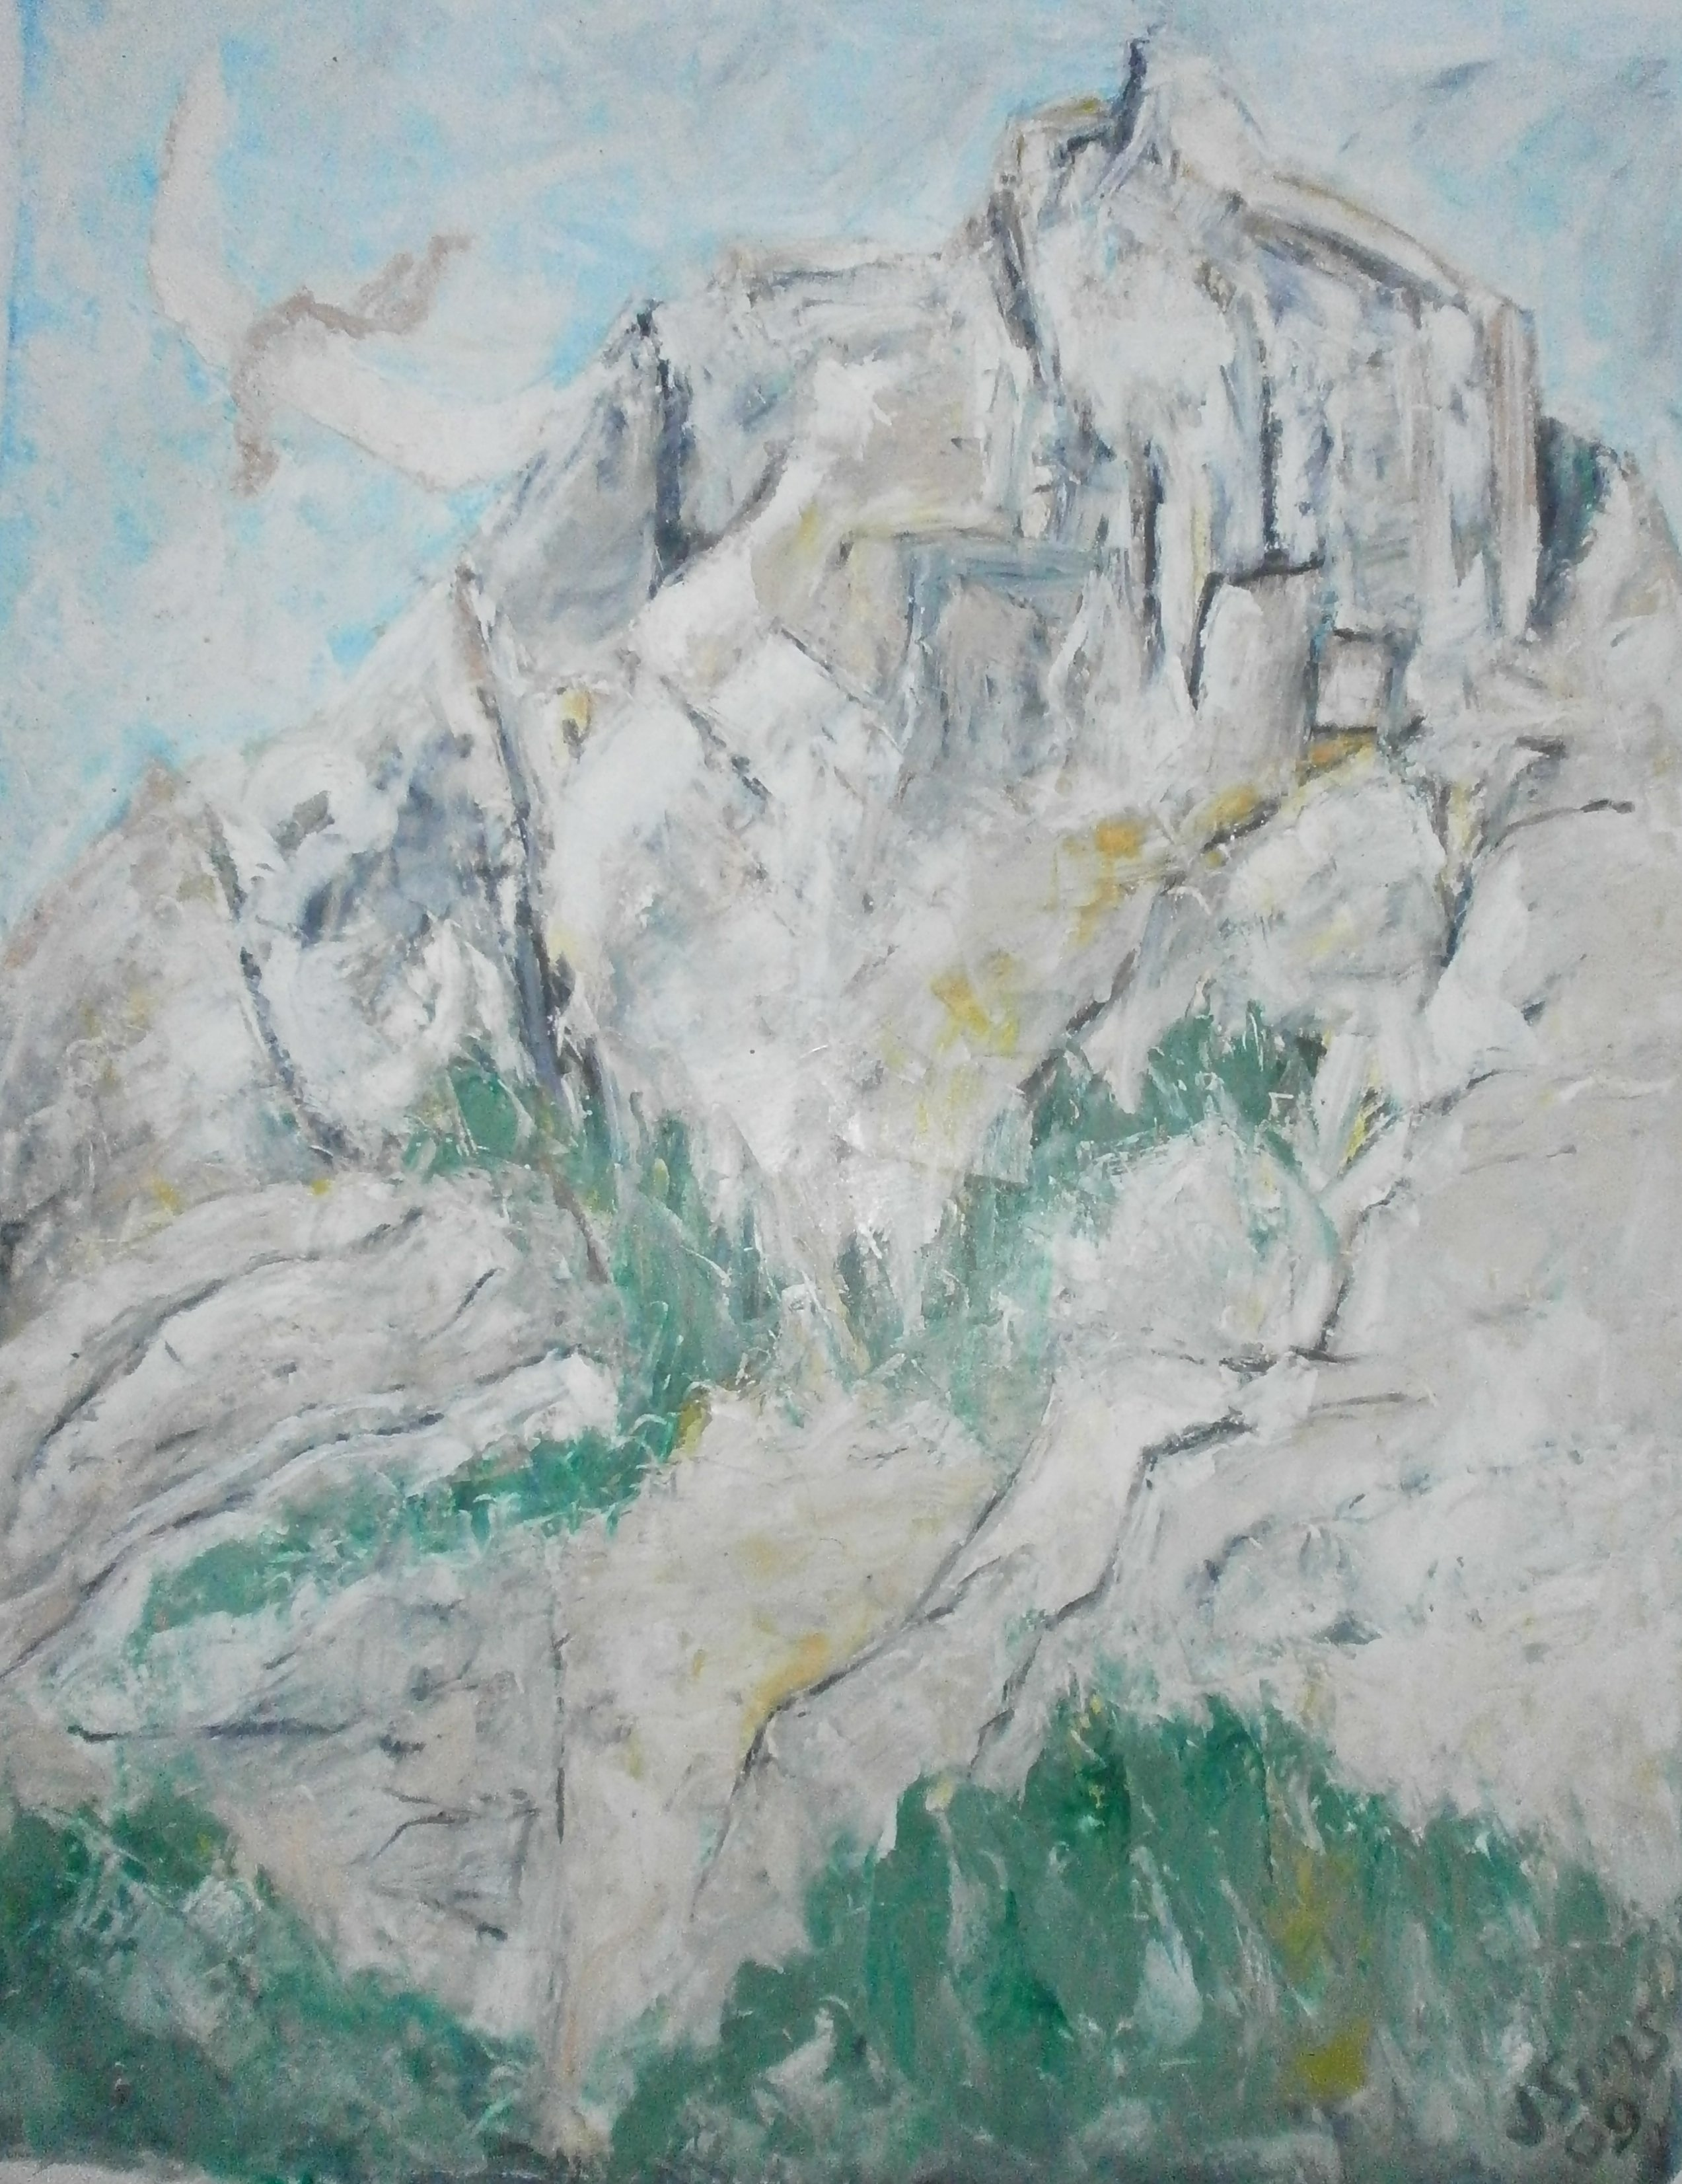 John Sims: 'icarus in switzerland', 2009 Oil Pastel, Landscape. Artist Description: In summer 2009 I was invited to represent Cyprus at a stone carving symposium in the mountain village of Vattis in Switzerland. When not carving I made drawings of the beautiful landscape all around me. The village is situated in a deep river valley with high mountains on ...